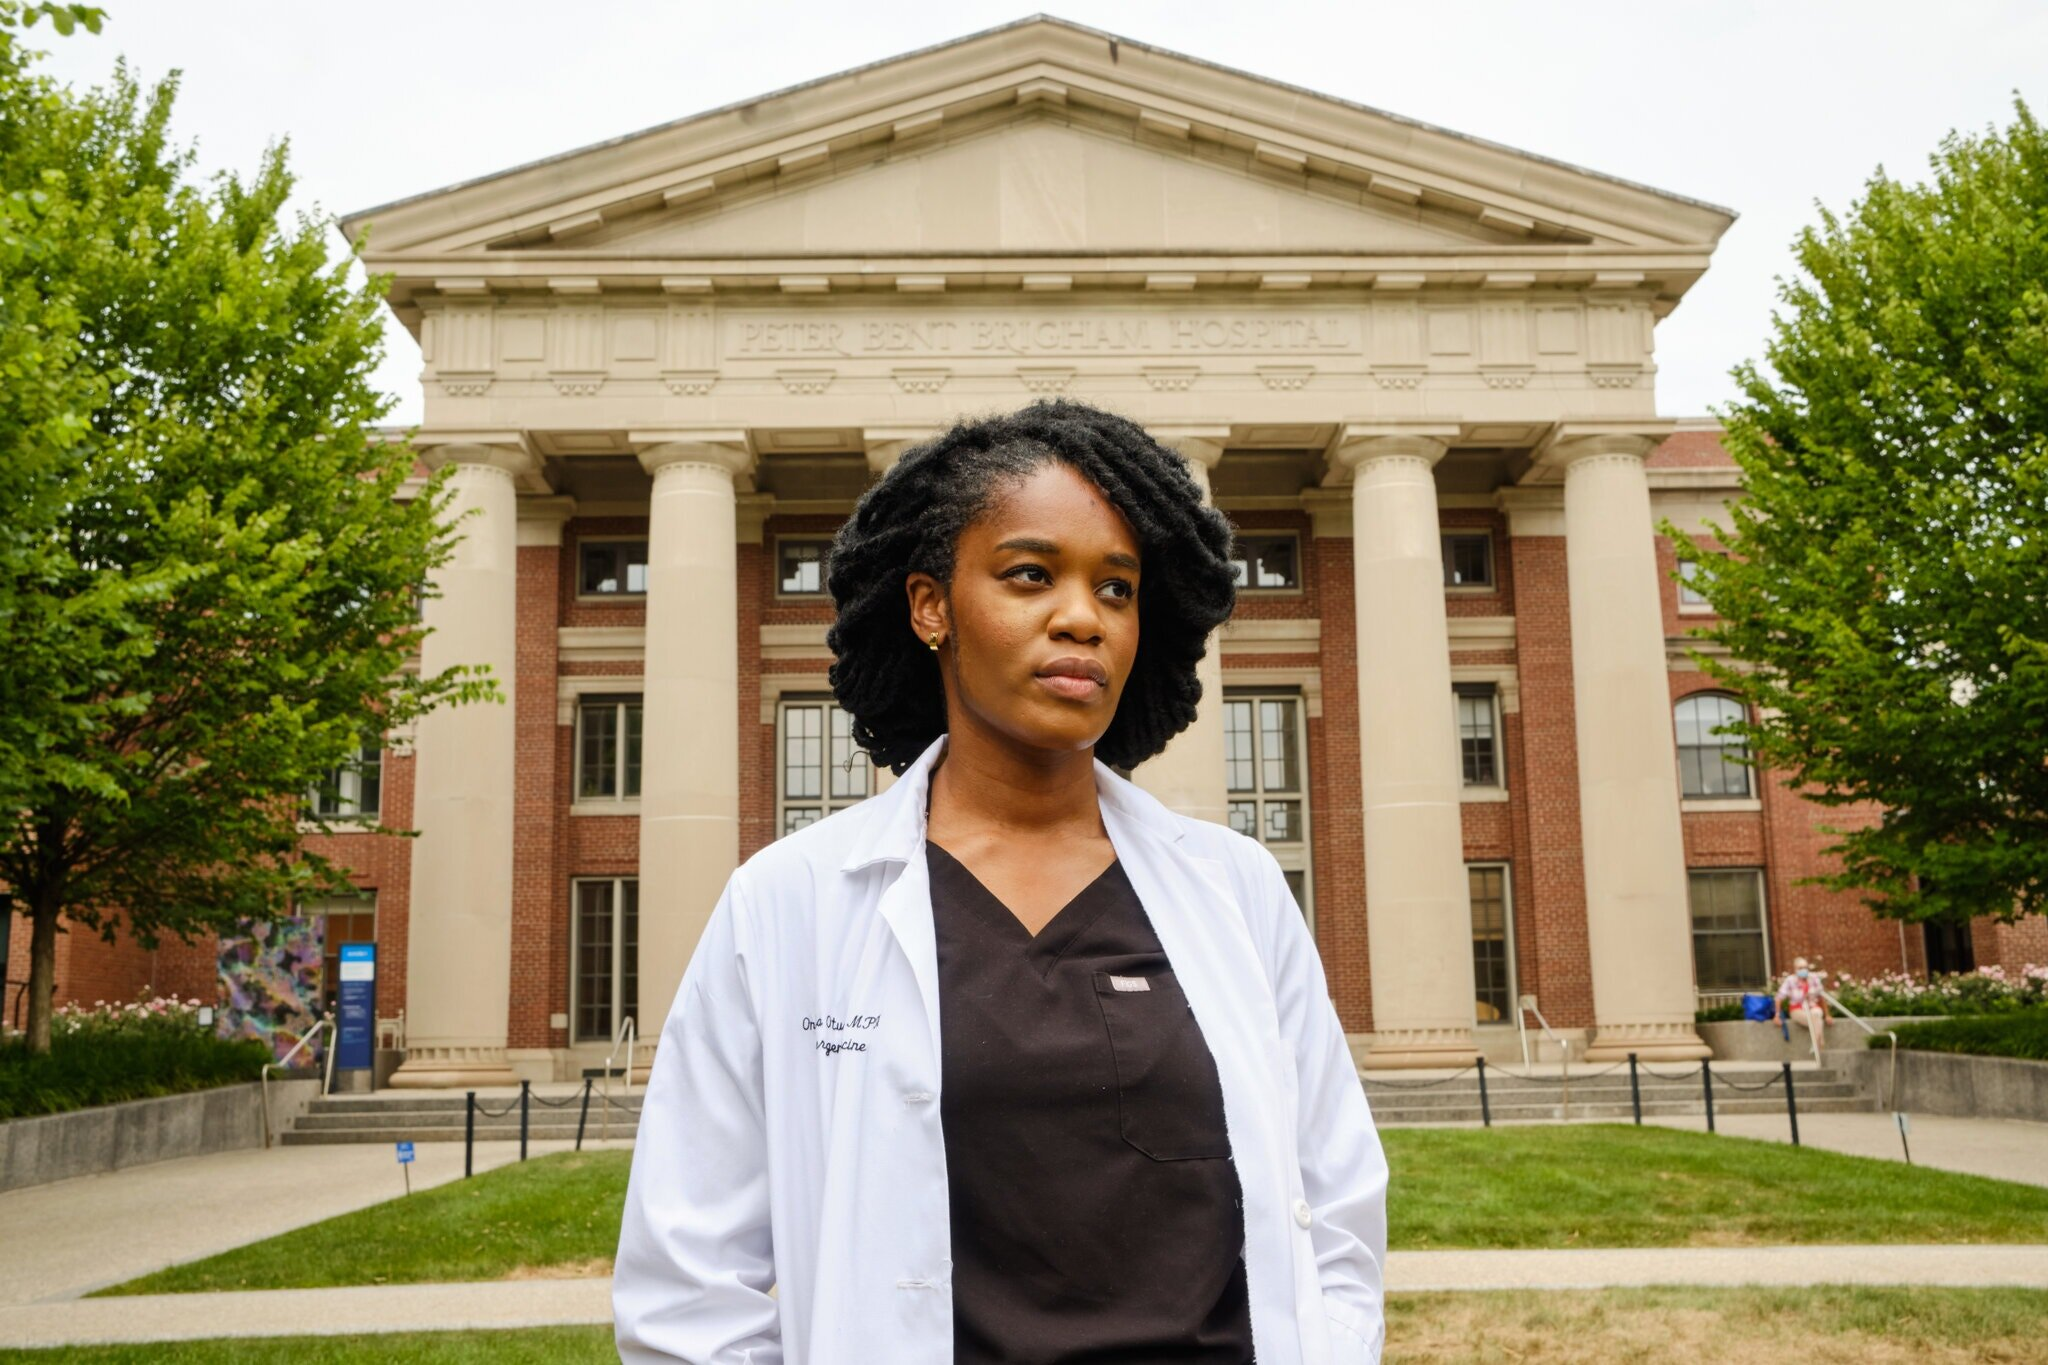 Dr. Onyeka Otugo, an emergency physician. Only 5 percent of the American physician work force is African-American, and roughly 2 percent are Black women.Credit...Alexandre Da Veiga for The New York Times